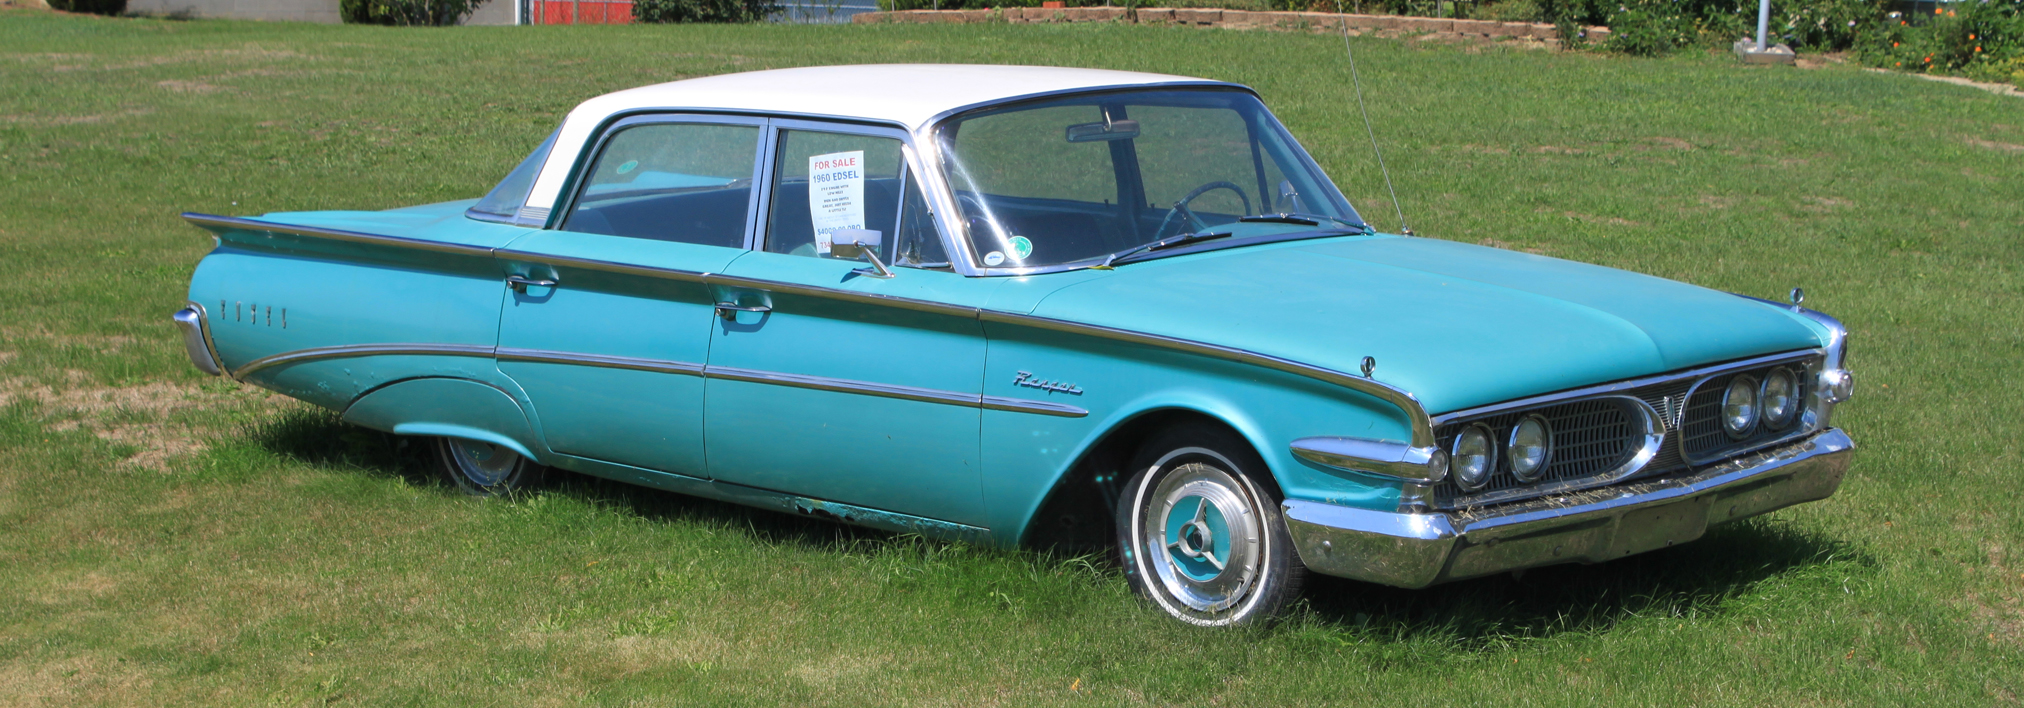 Blue Ford Edsel